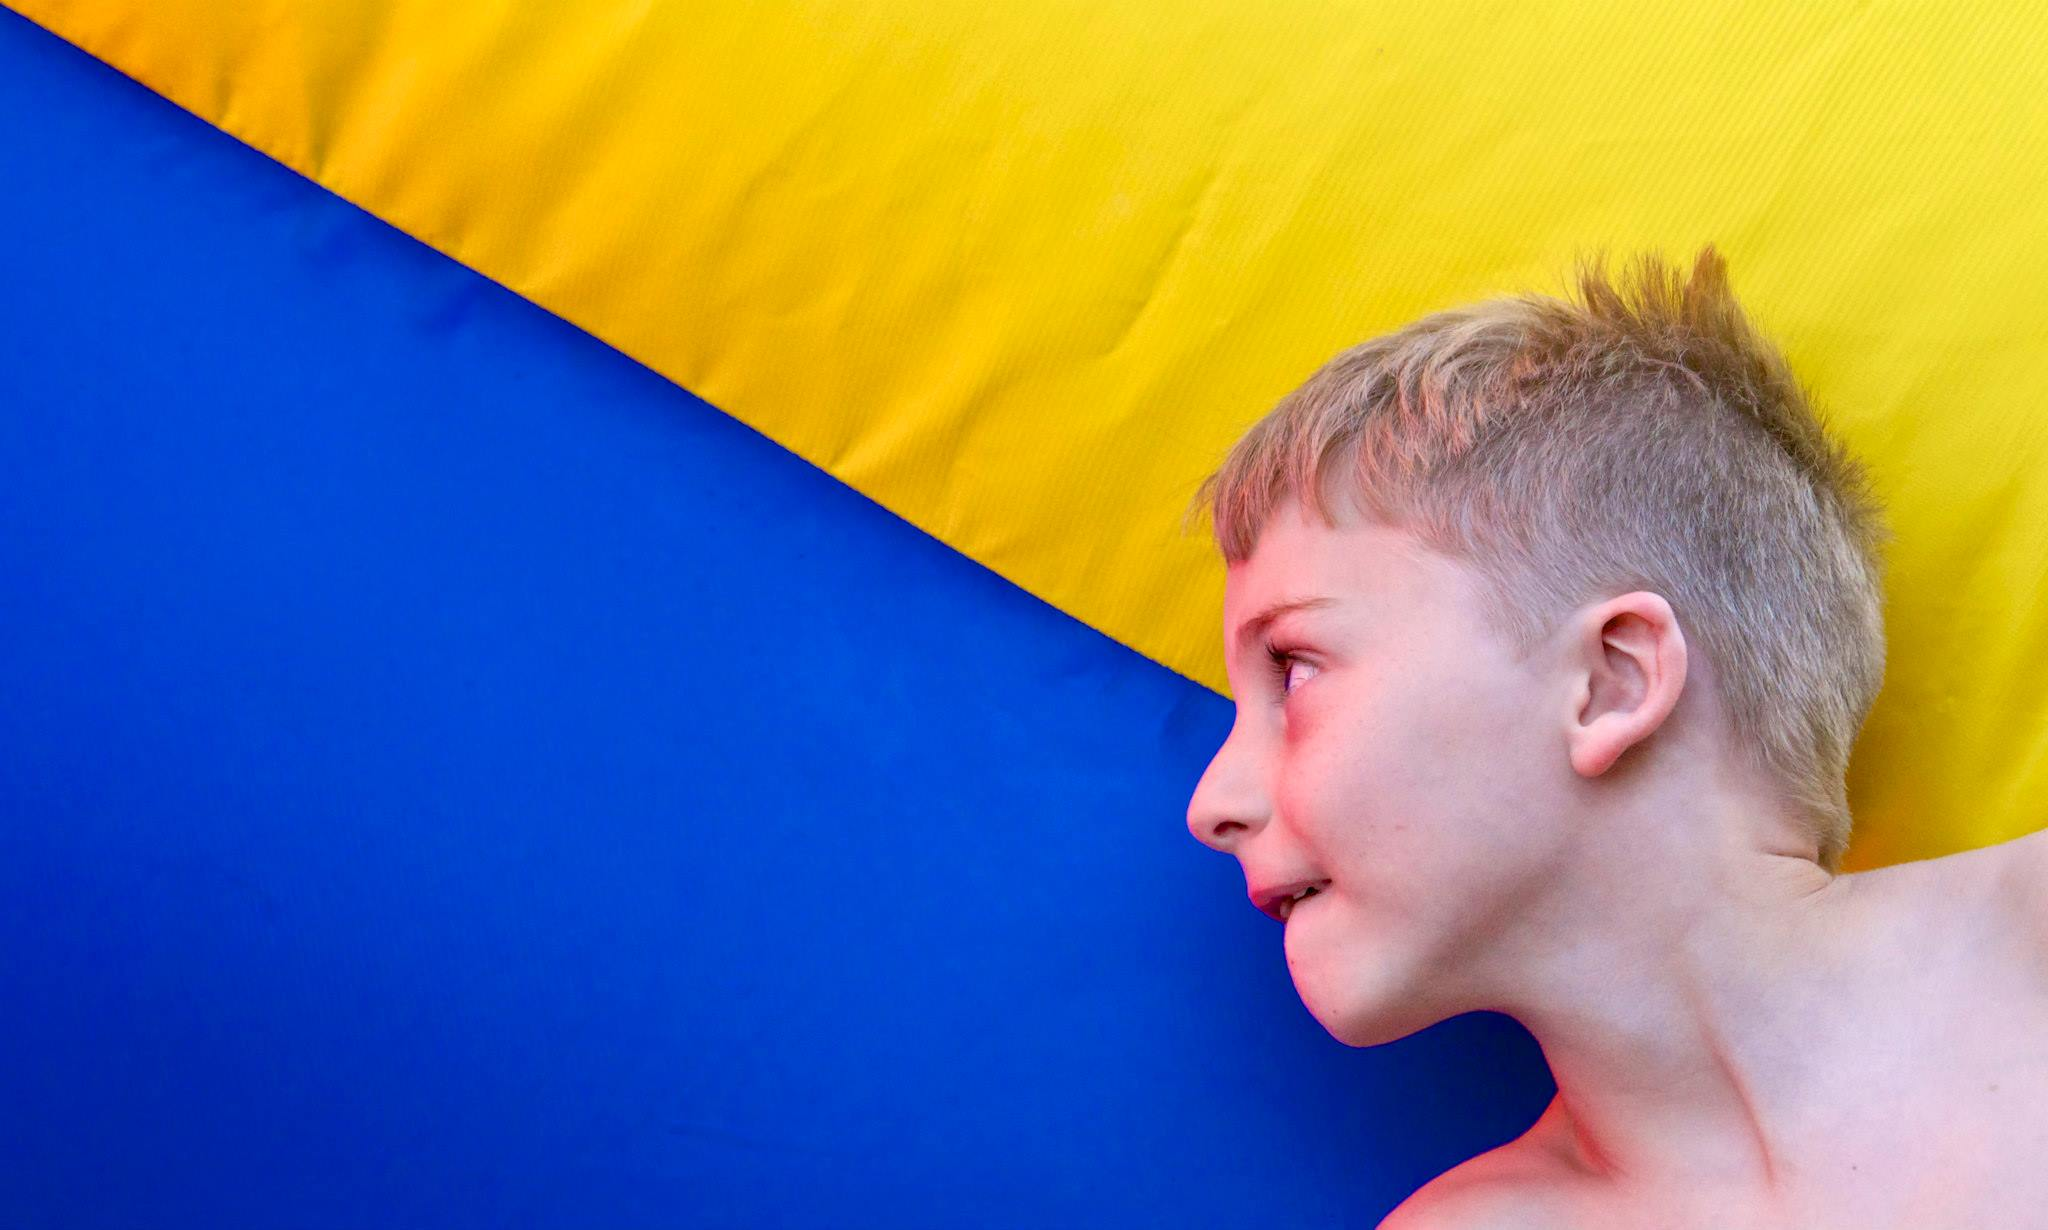 Jacob with Blue & Yellow